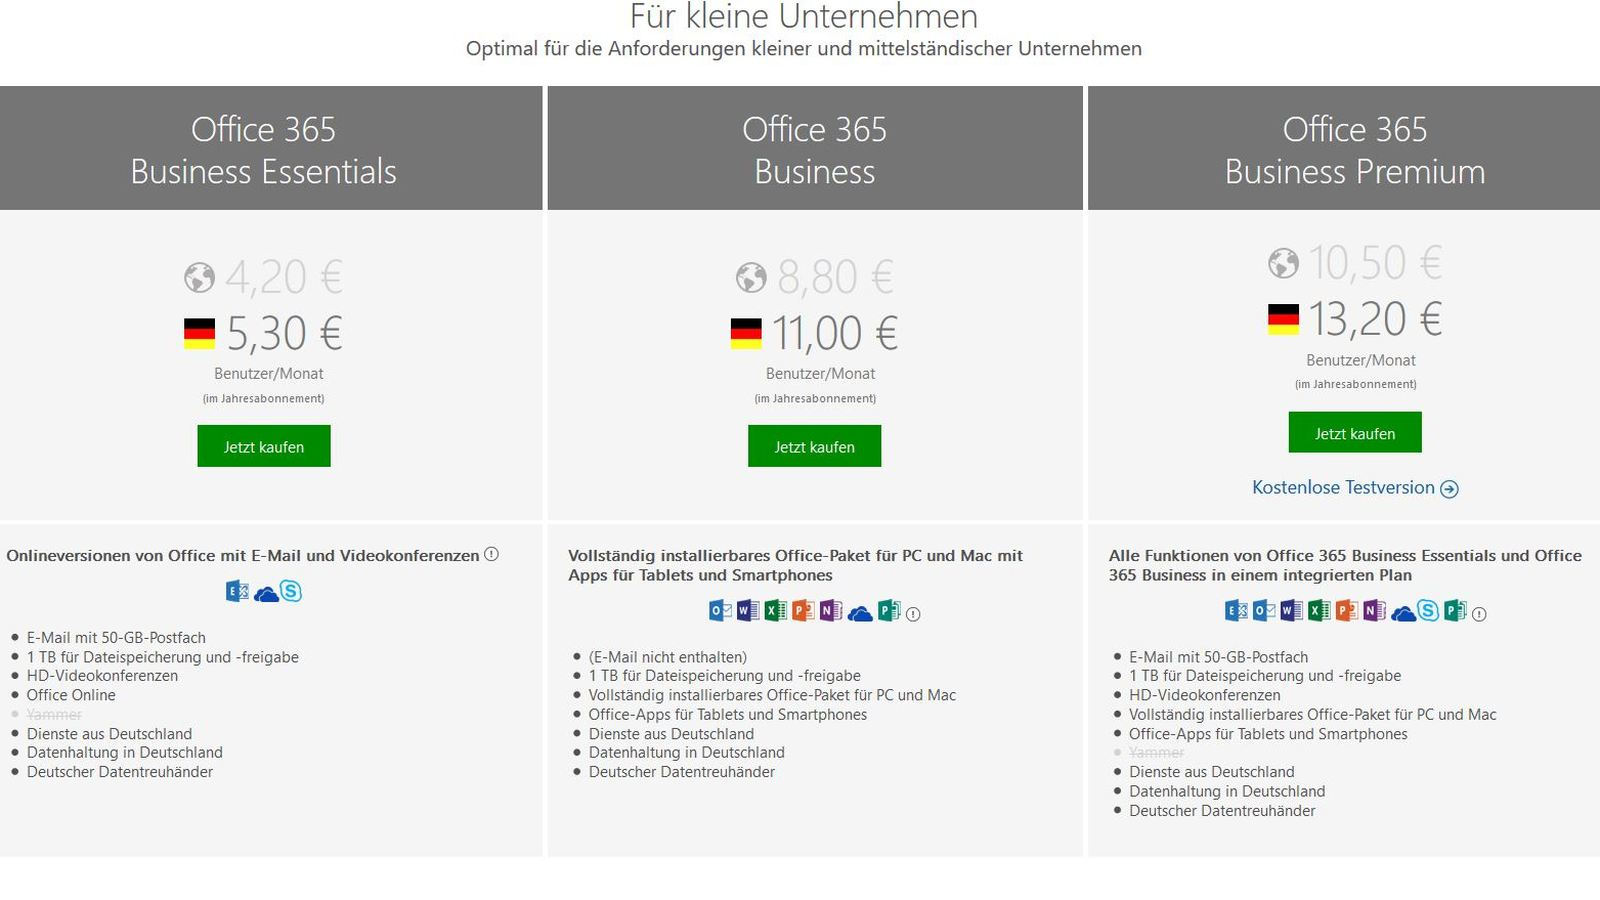 Office365 Deutschland (Quelle: Microsoft)